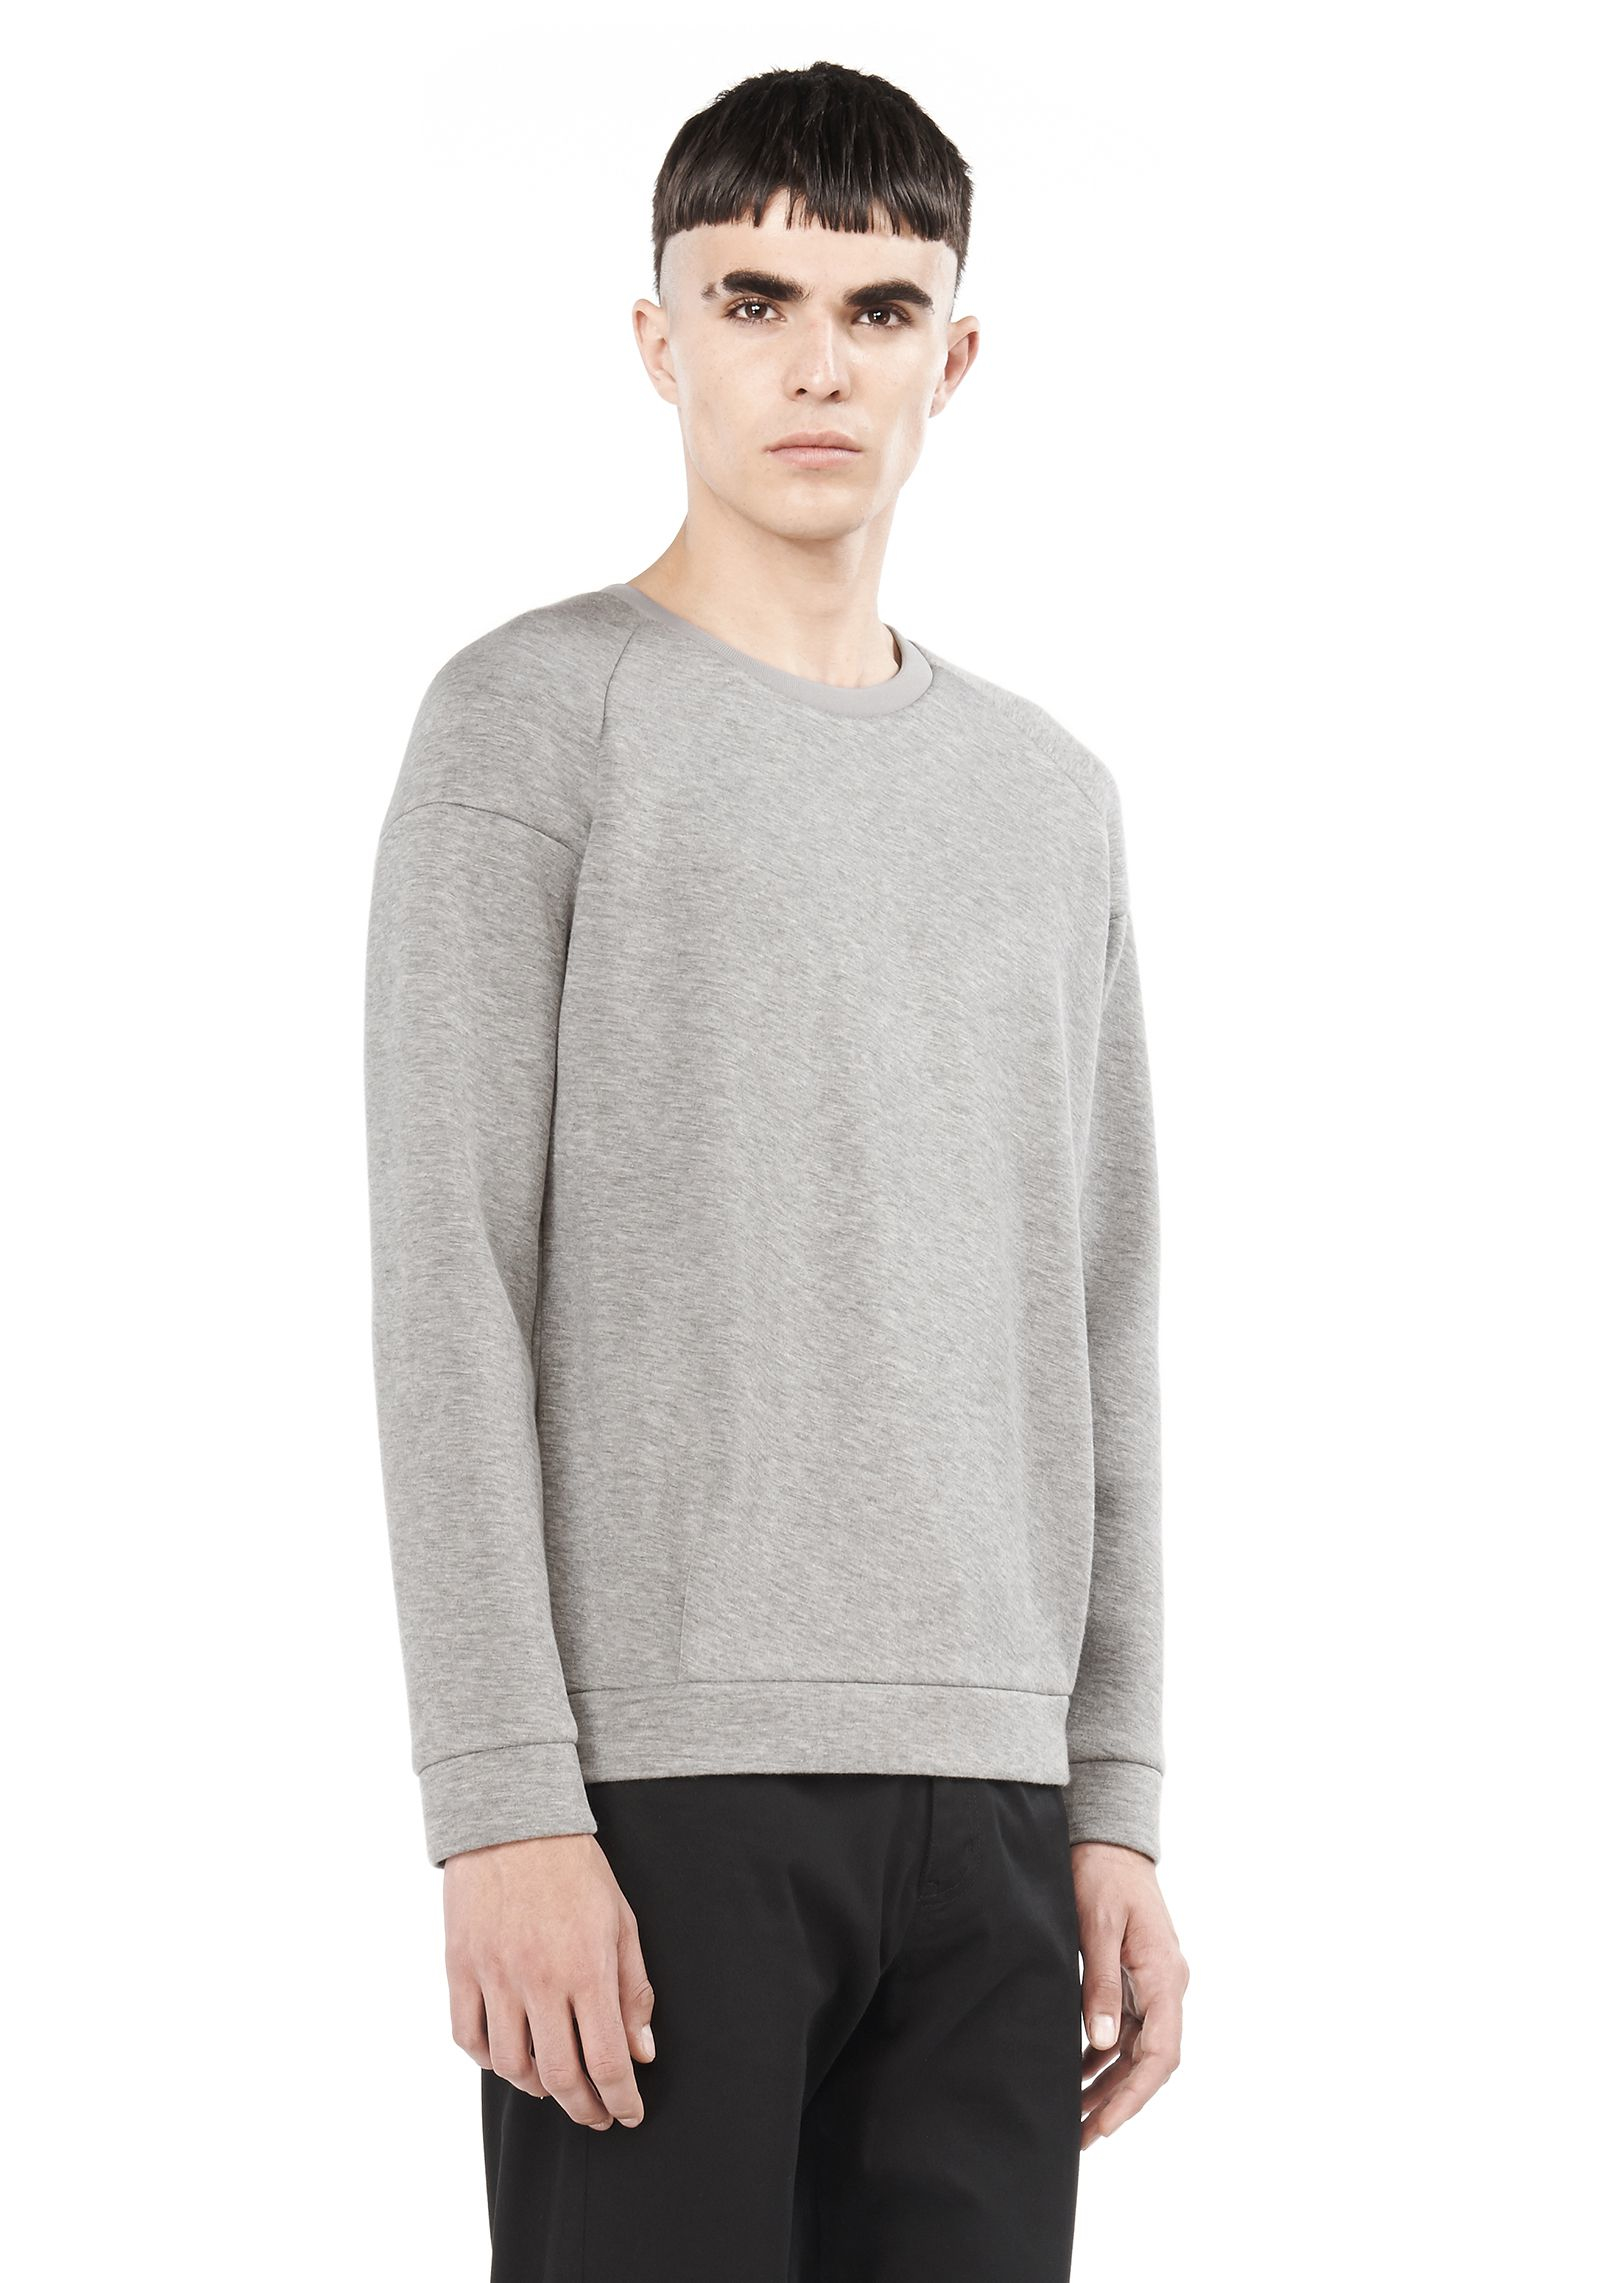 lyst t by alexander wang scuba sweatshirt in gray for men. Black Bedroom Furniture Sets. Home Design Ideas